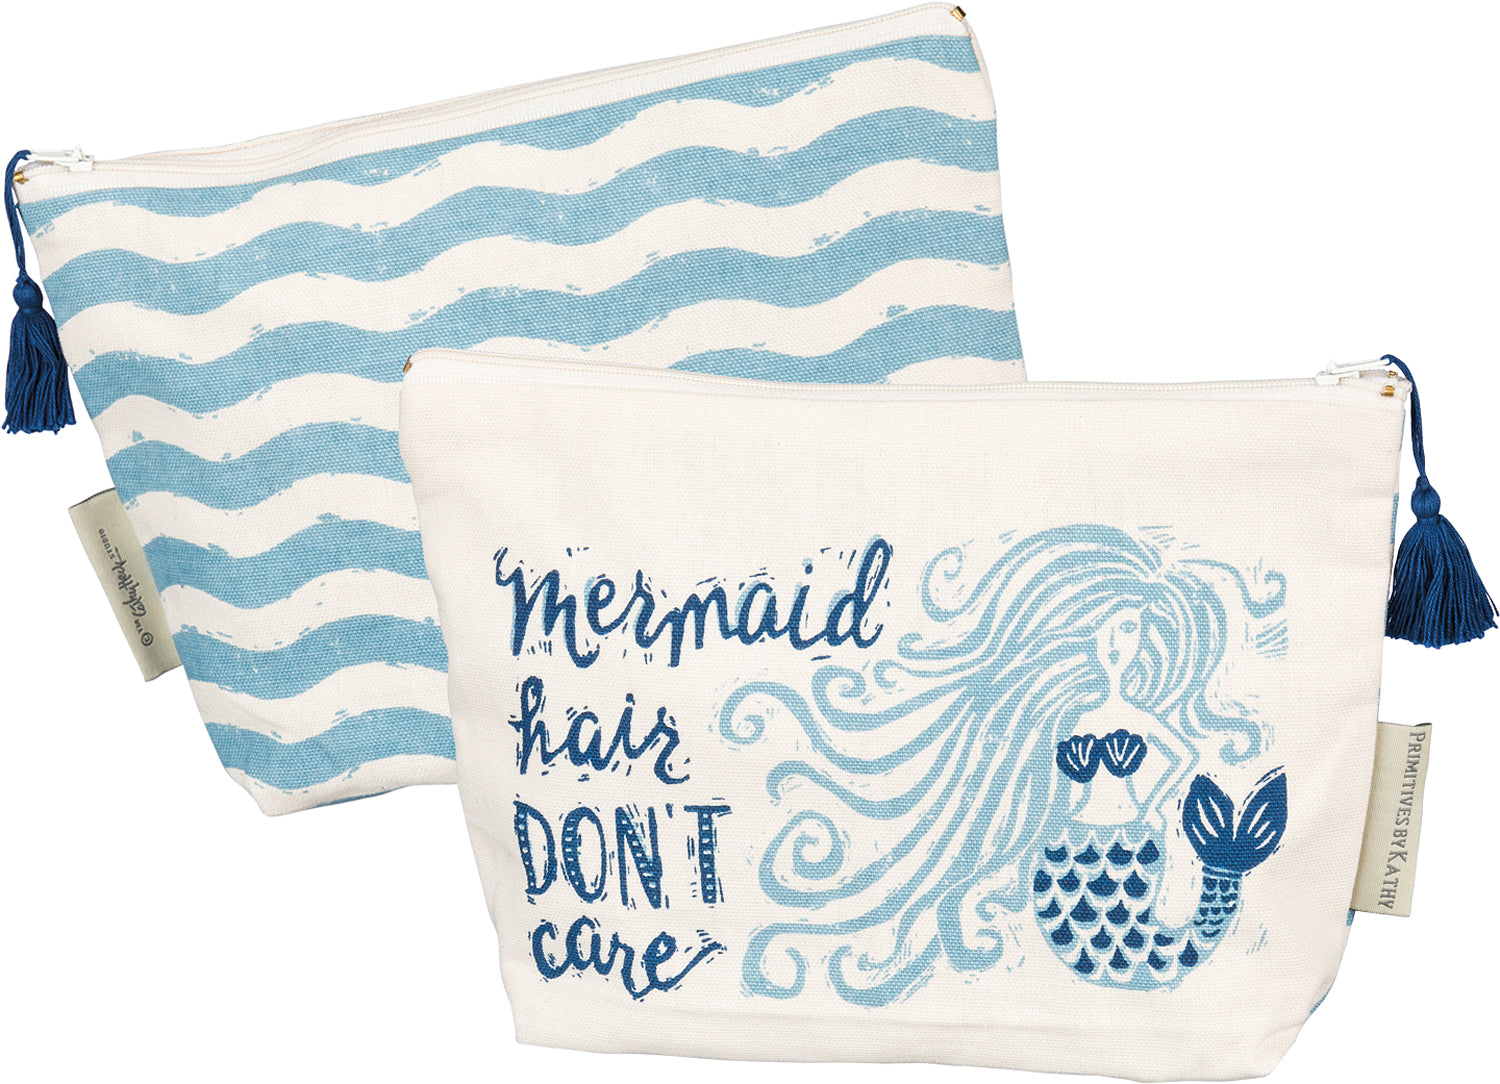 Mermaid Hair Don't Care Zippered Pouch